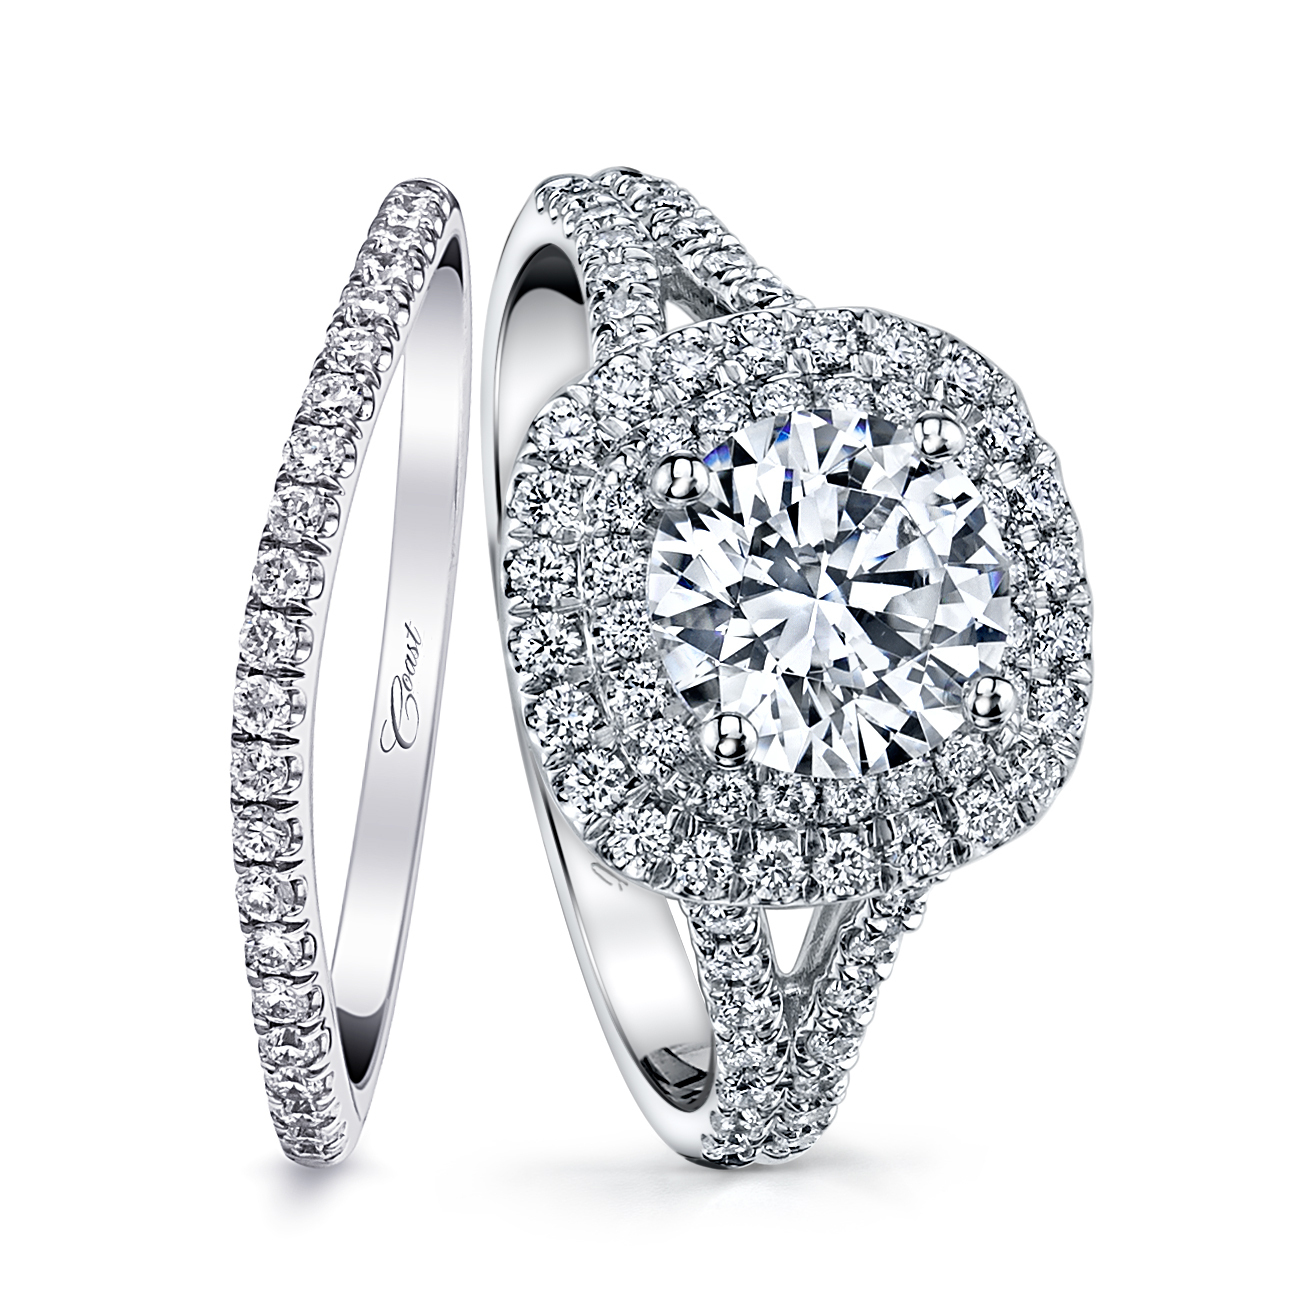 Charisma Engagement Ring - Double Halo